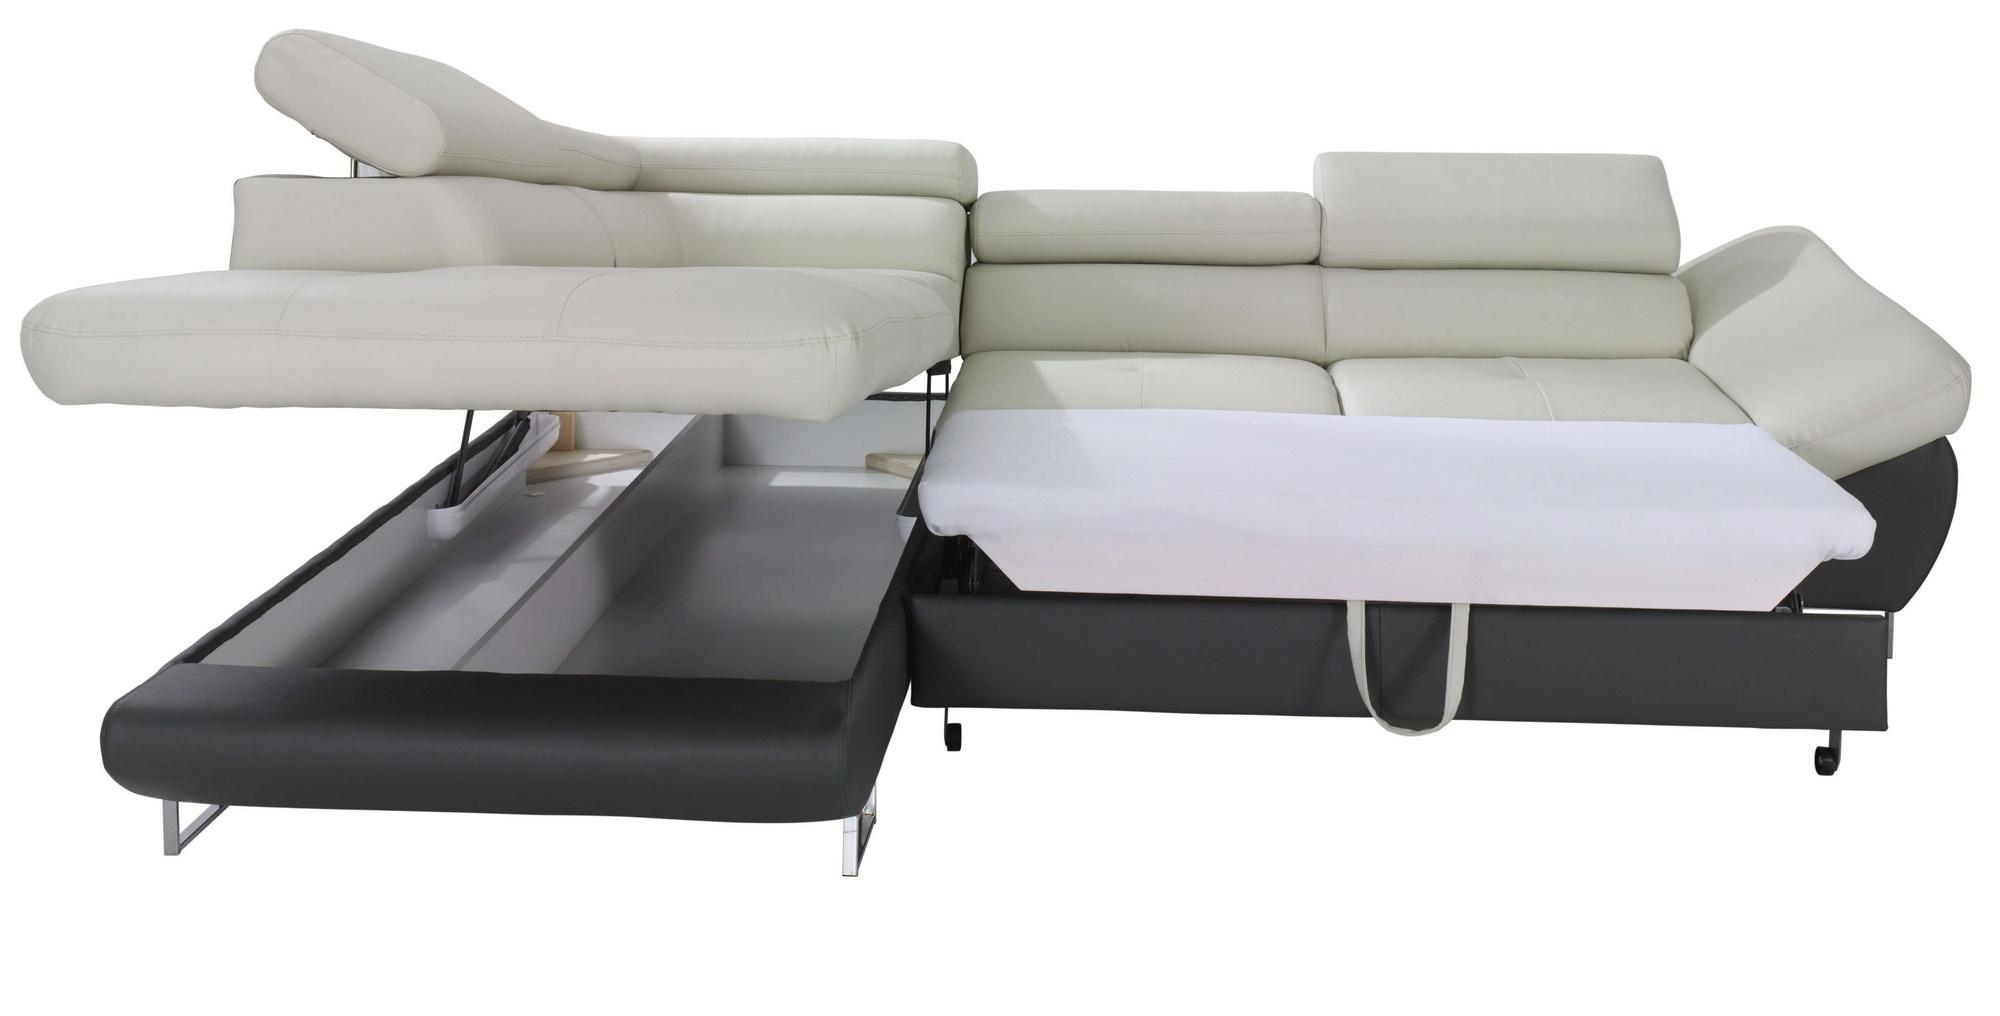 Fabio Sectional Sofa Sleeper With Storage, Creative Furniture In Sectional Sofa Bed With Storage (Image 6 of 20)